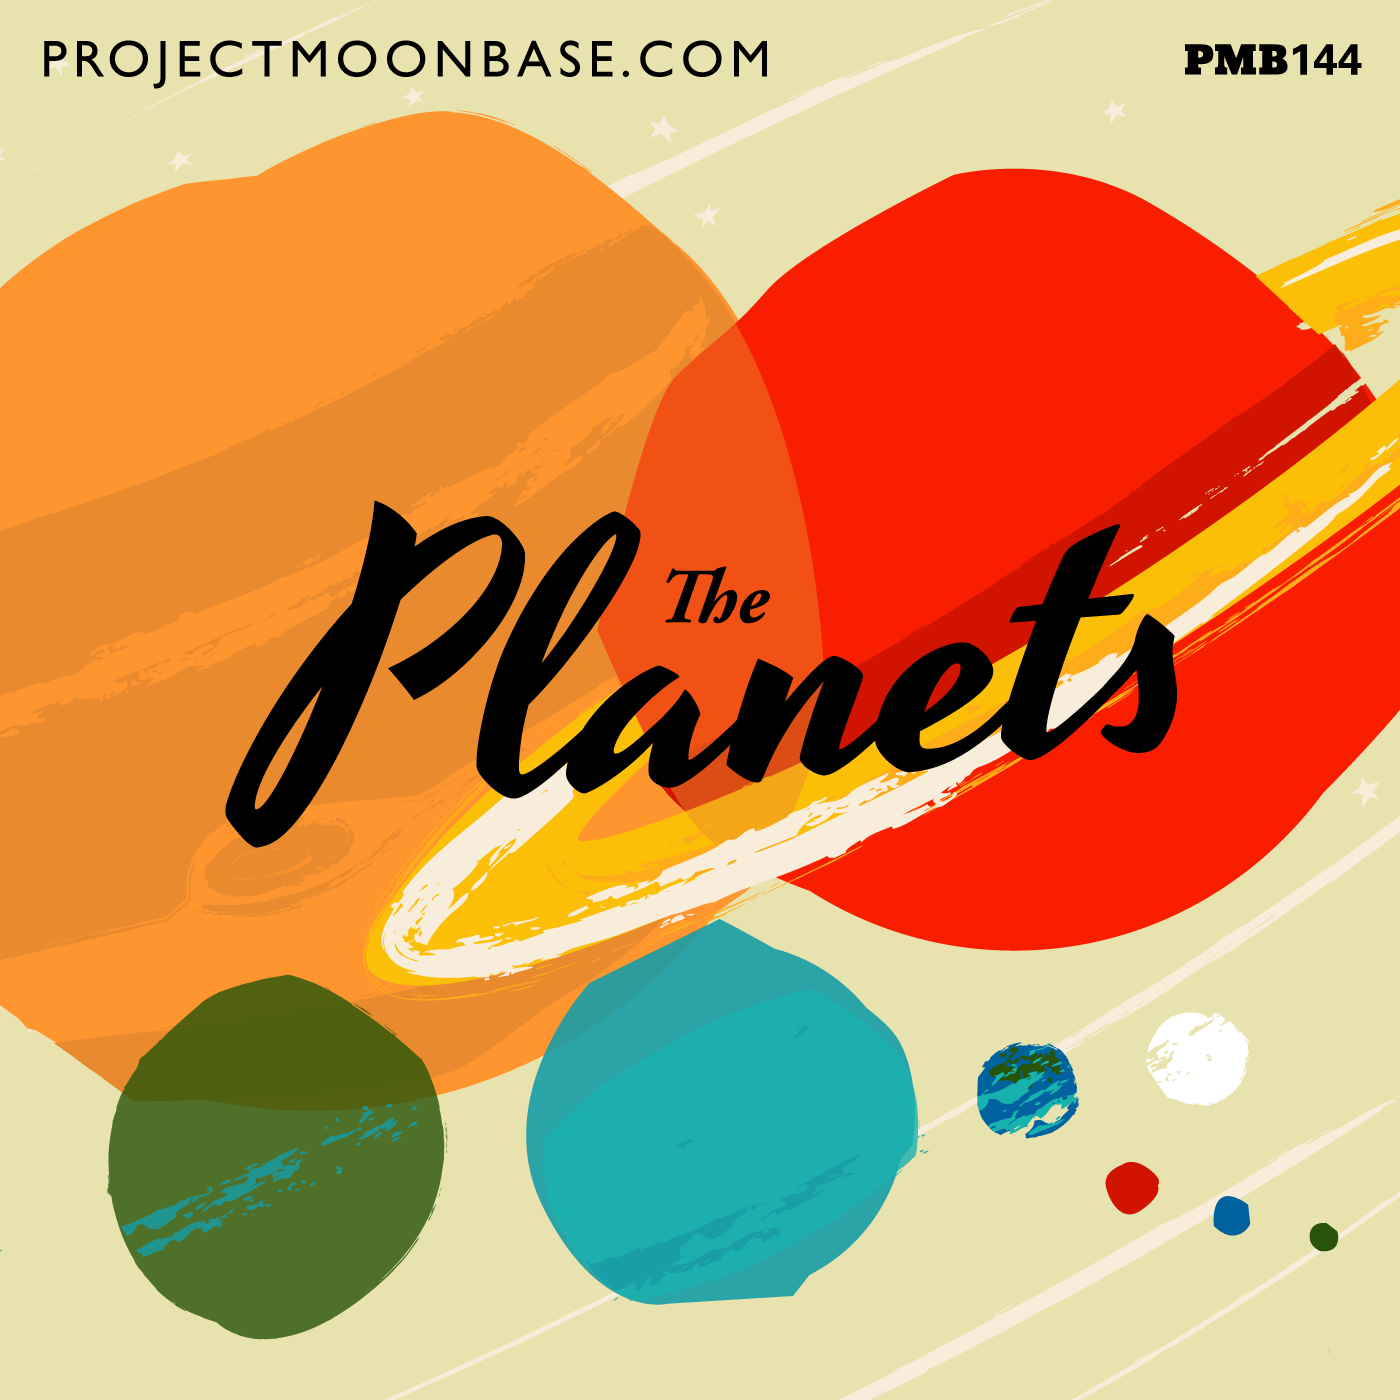 PMB144 The Planets